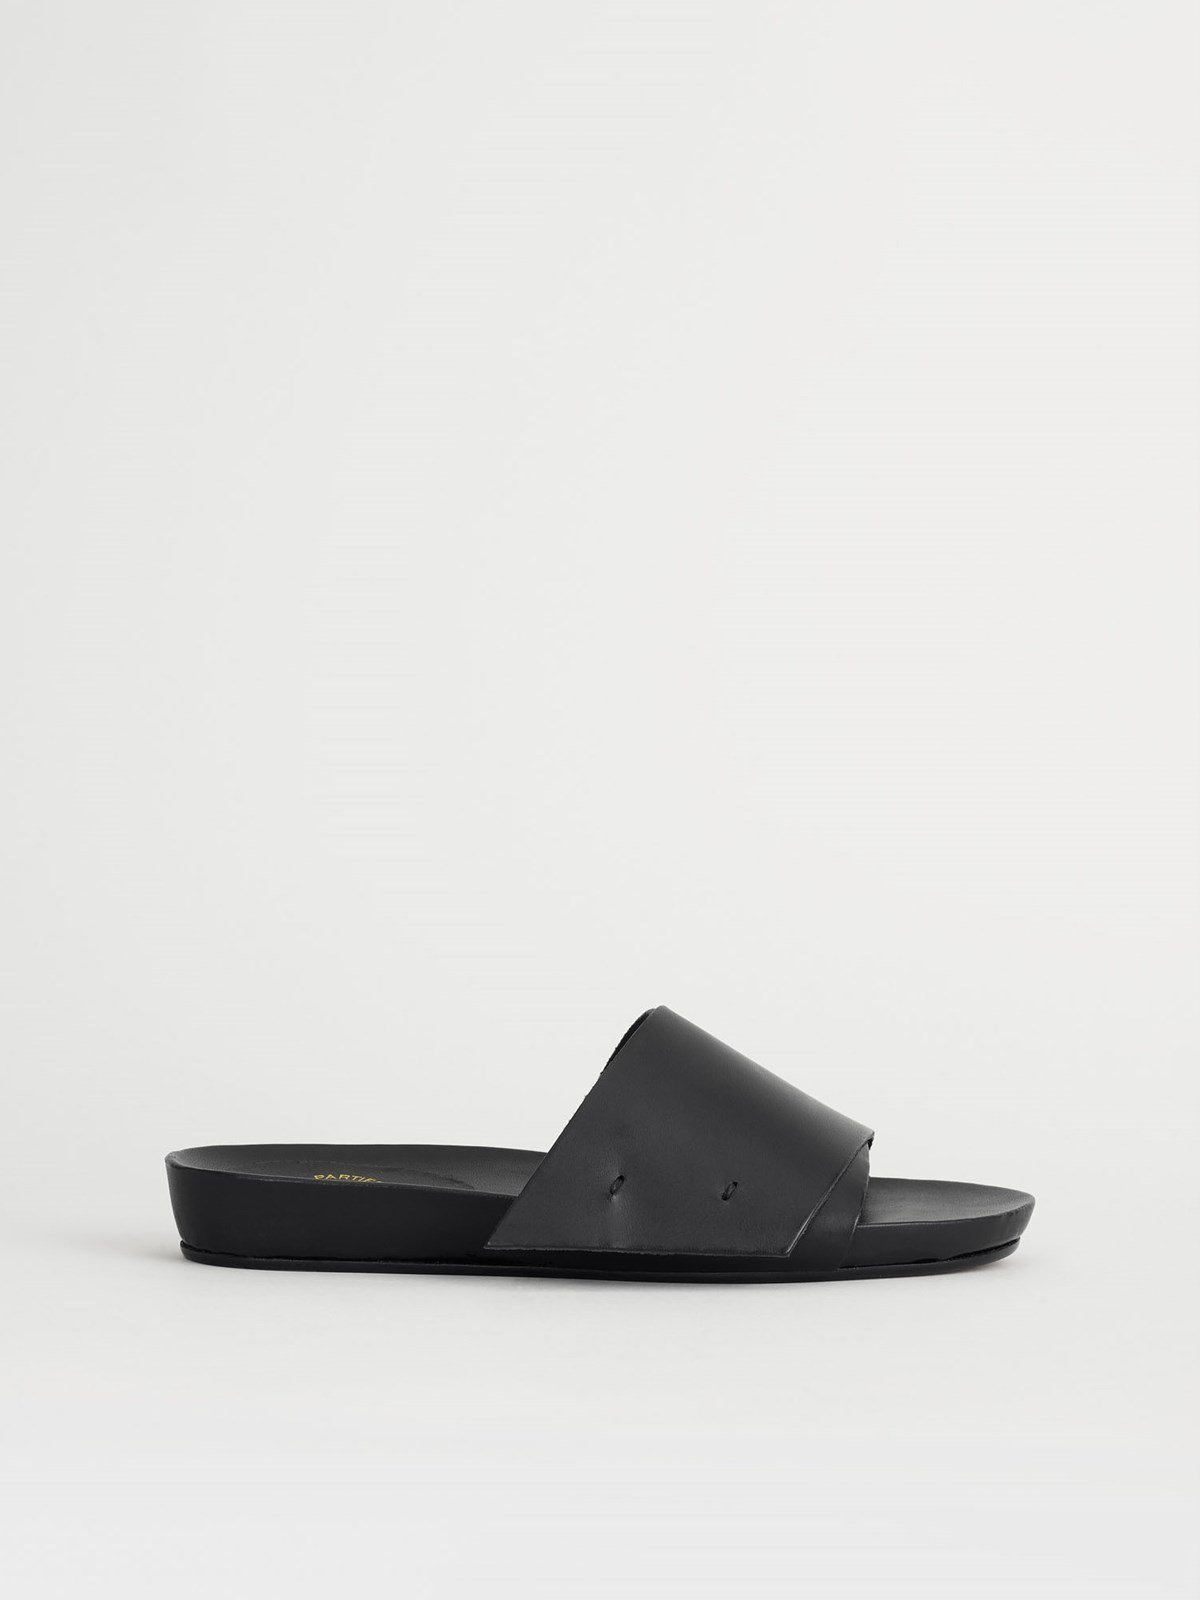 Manfio Black Everyday sandals